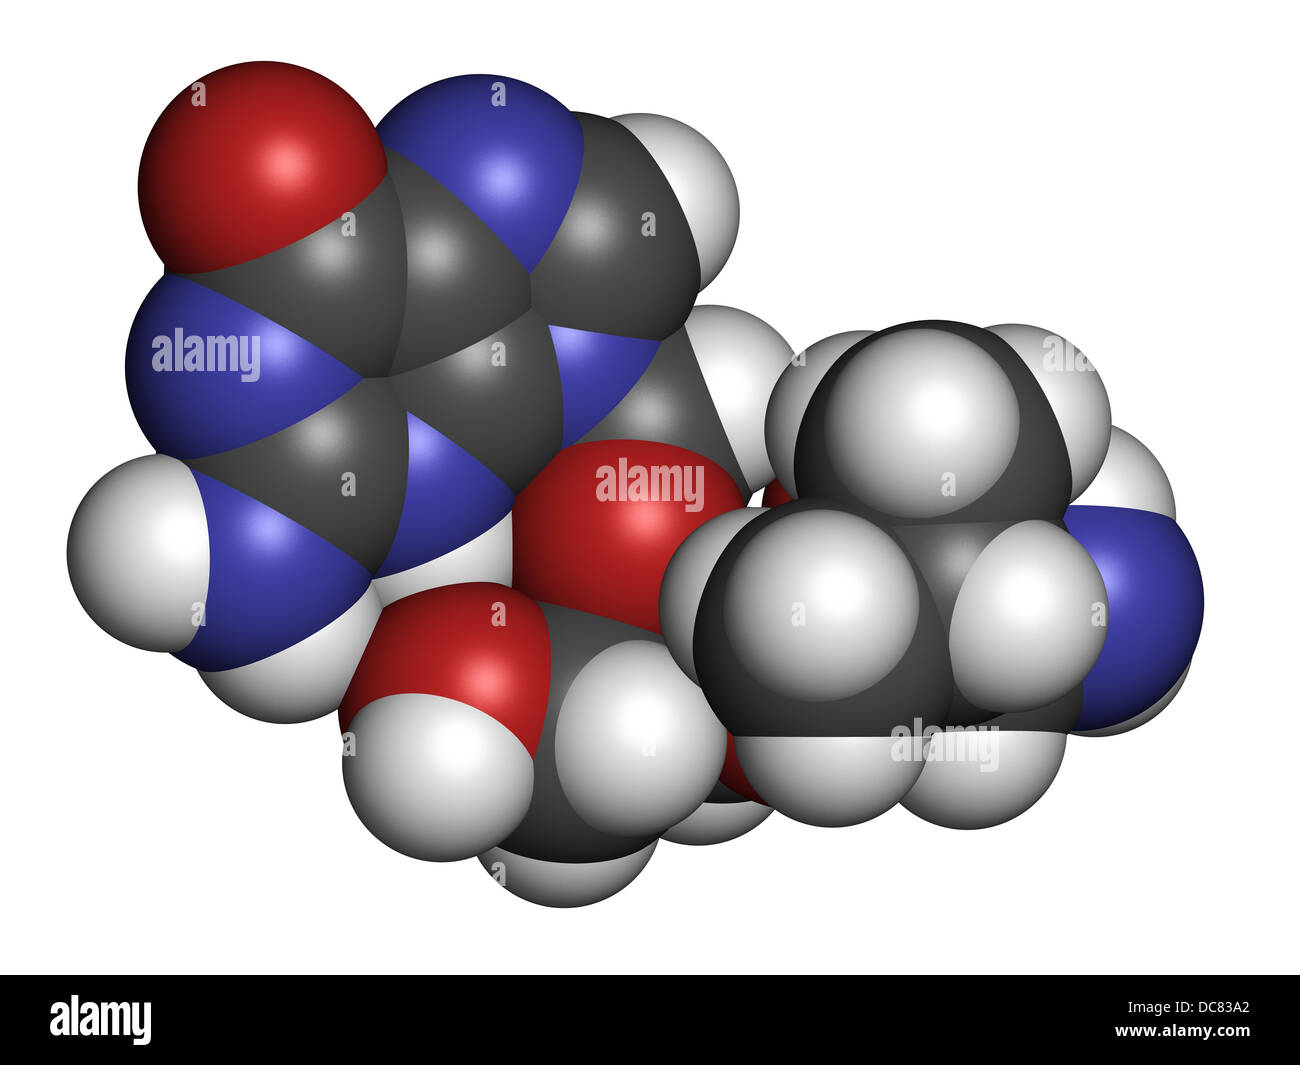 Valganciclovir cytomegalovirus (CMV, HCMV) drug, chemical structure. Atoms are represented as spheres. - Stock Image